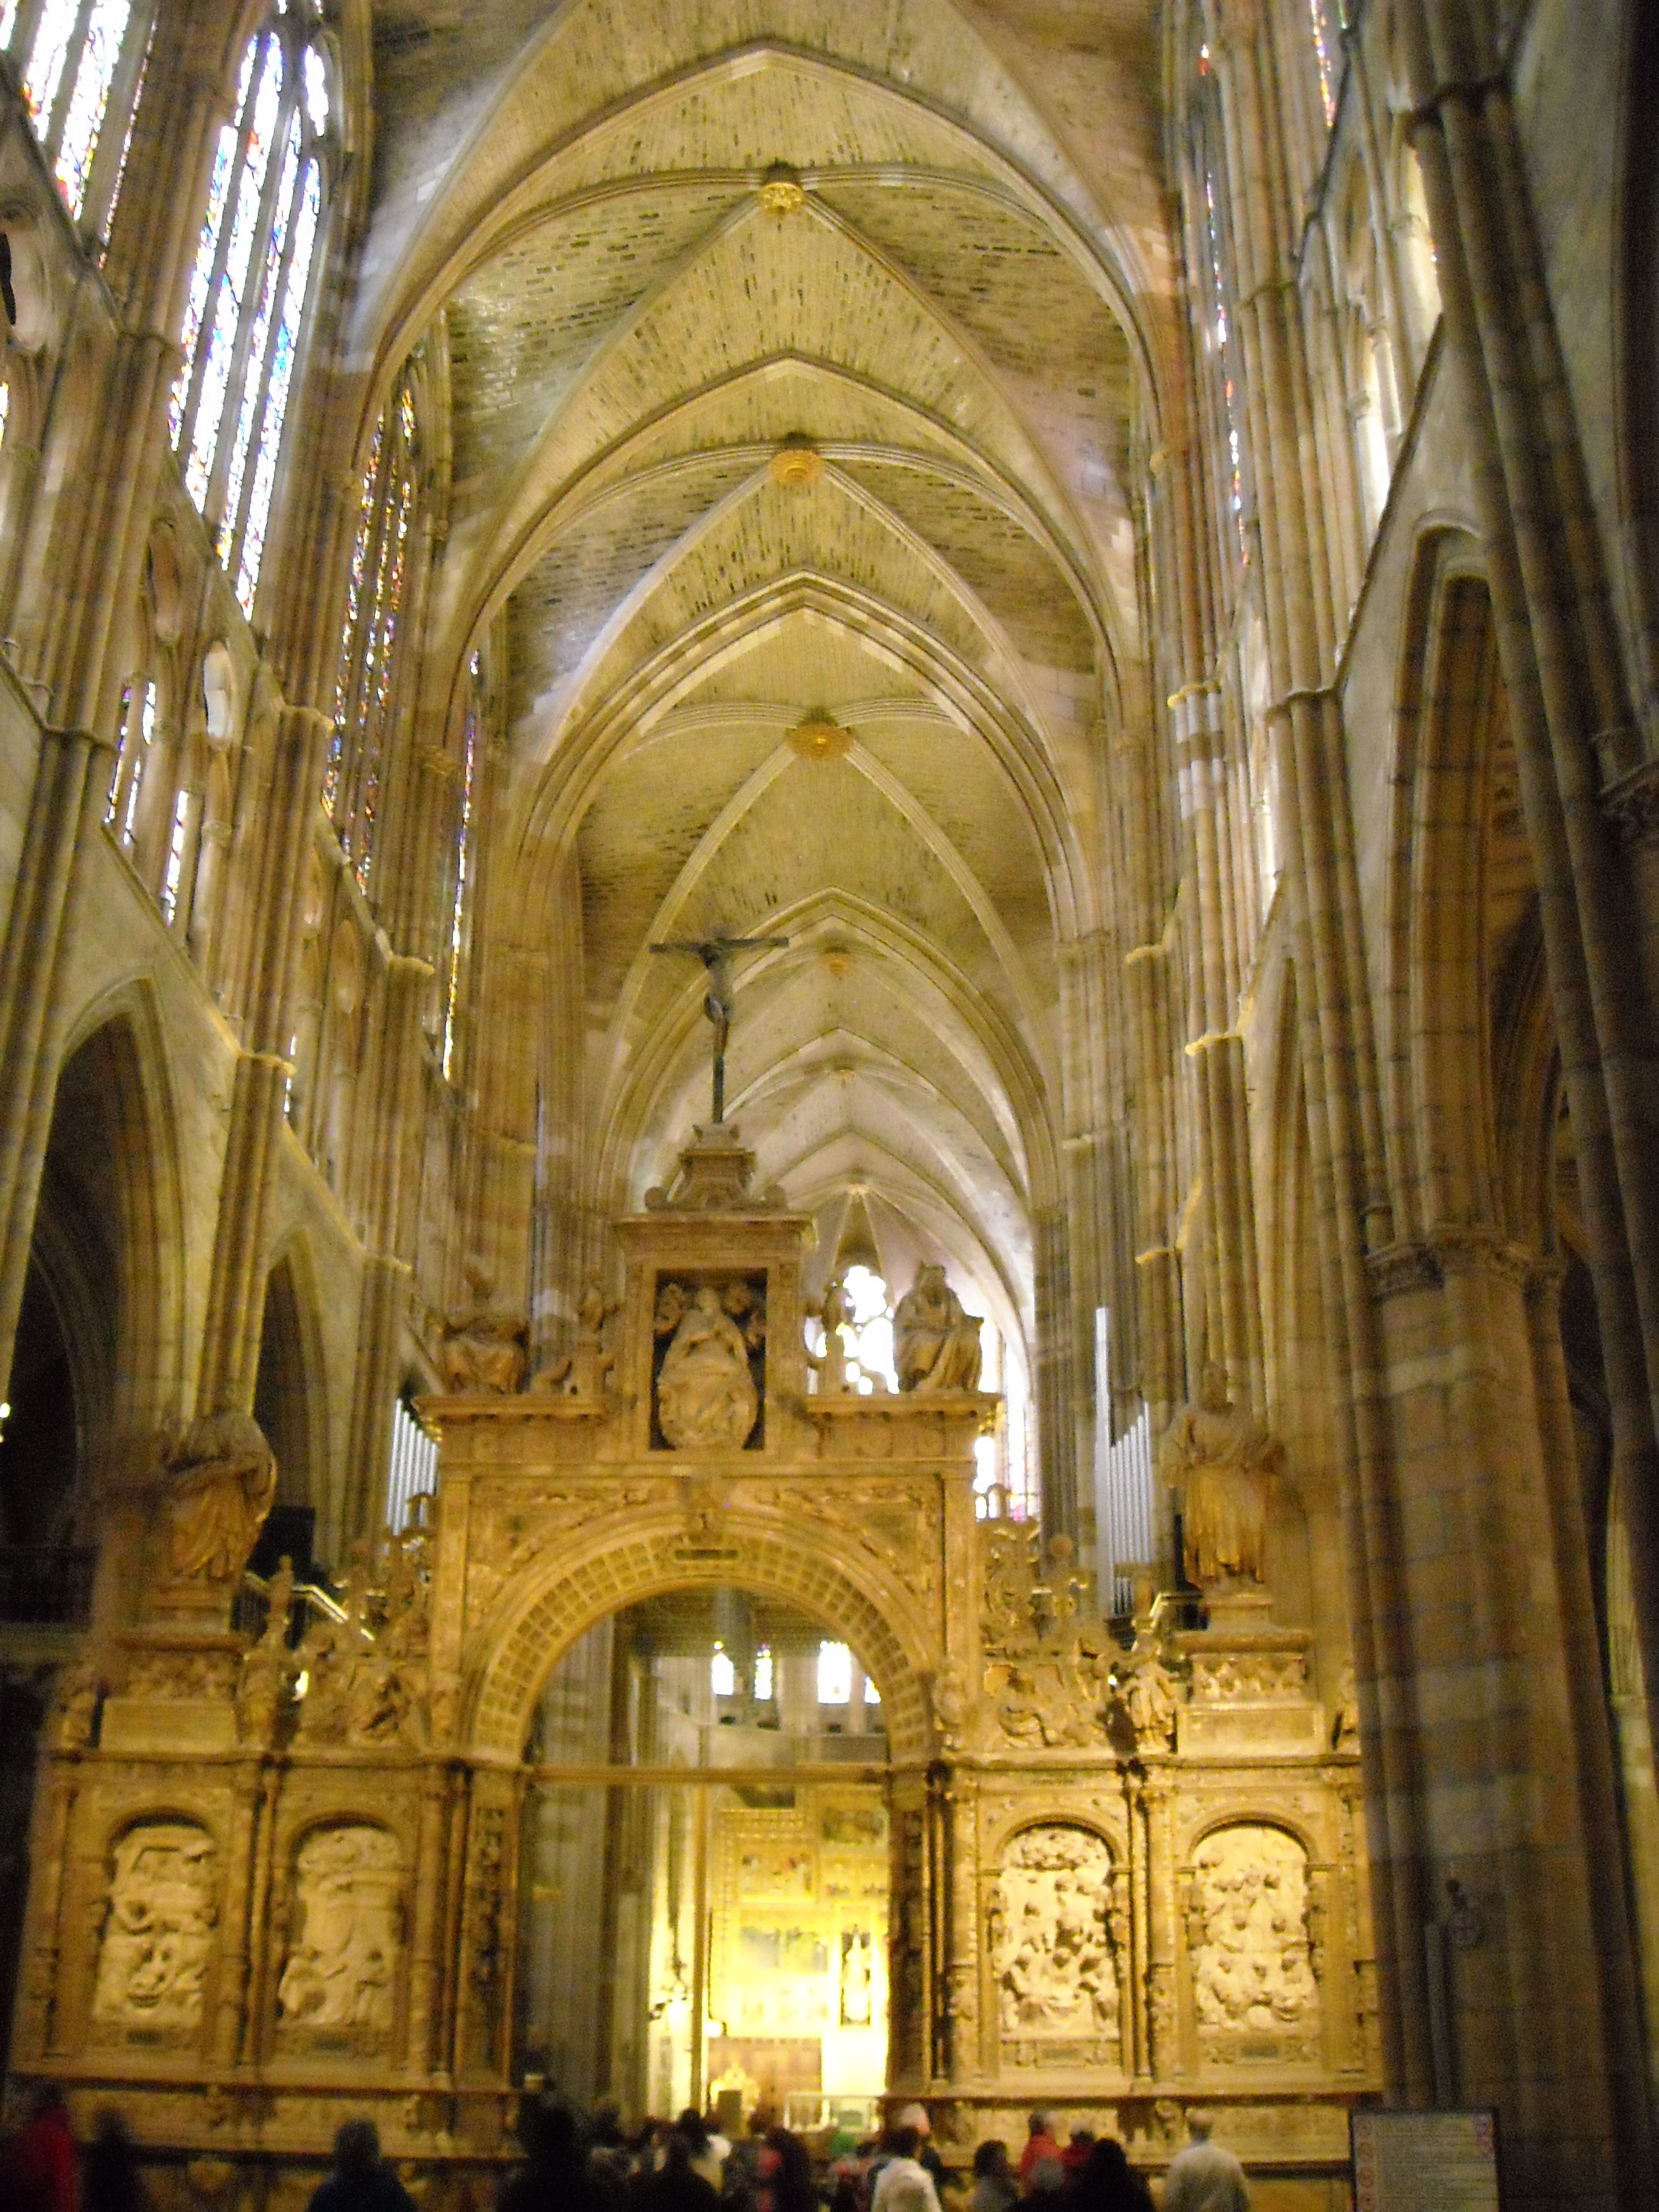 File:Catedral de Leon nave central.jpg - Wikimedia Commons